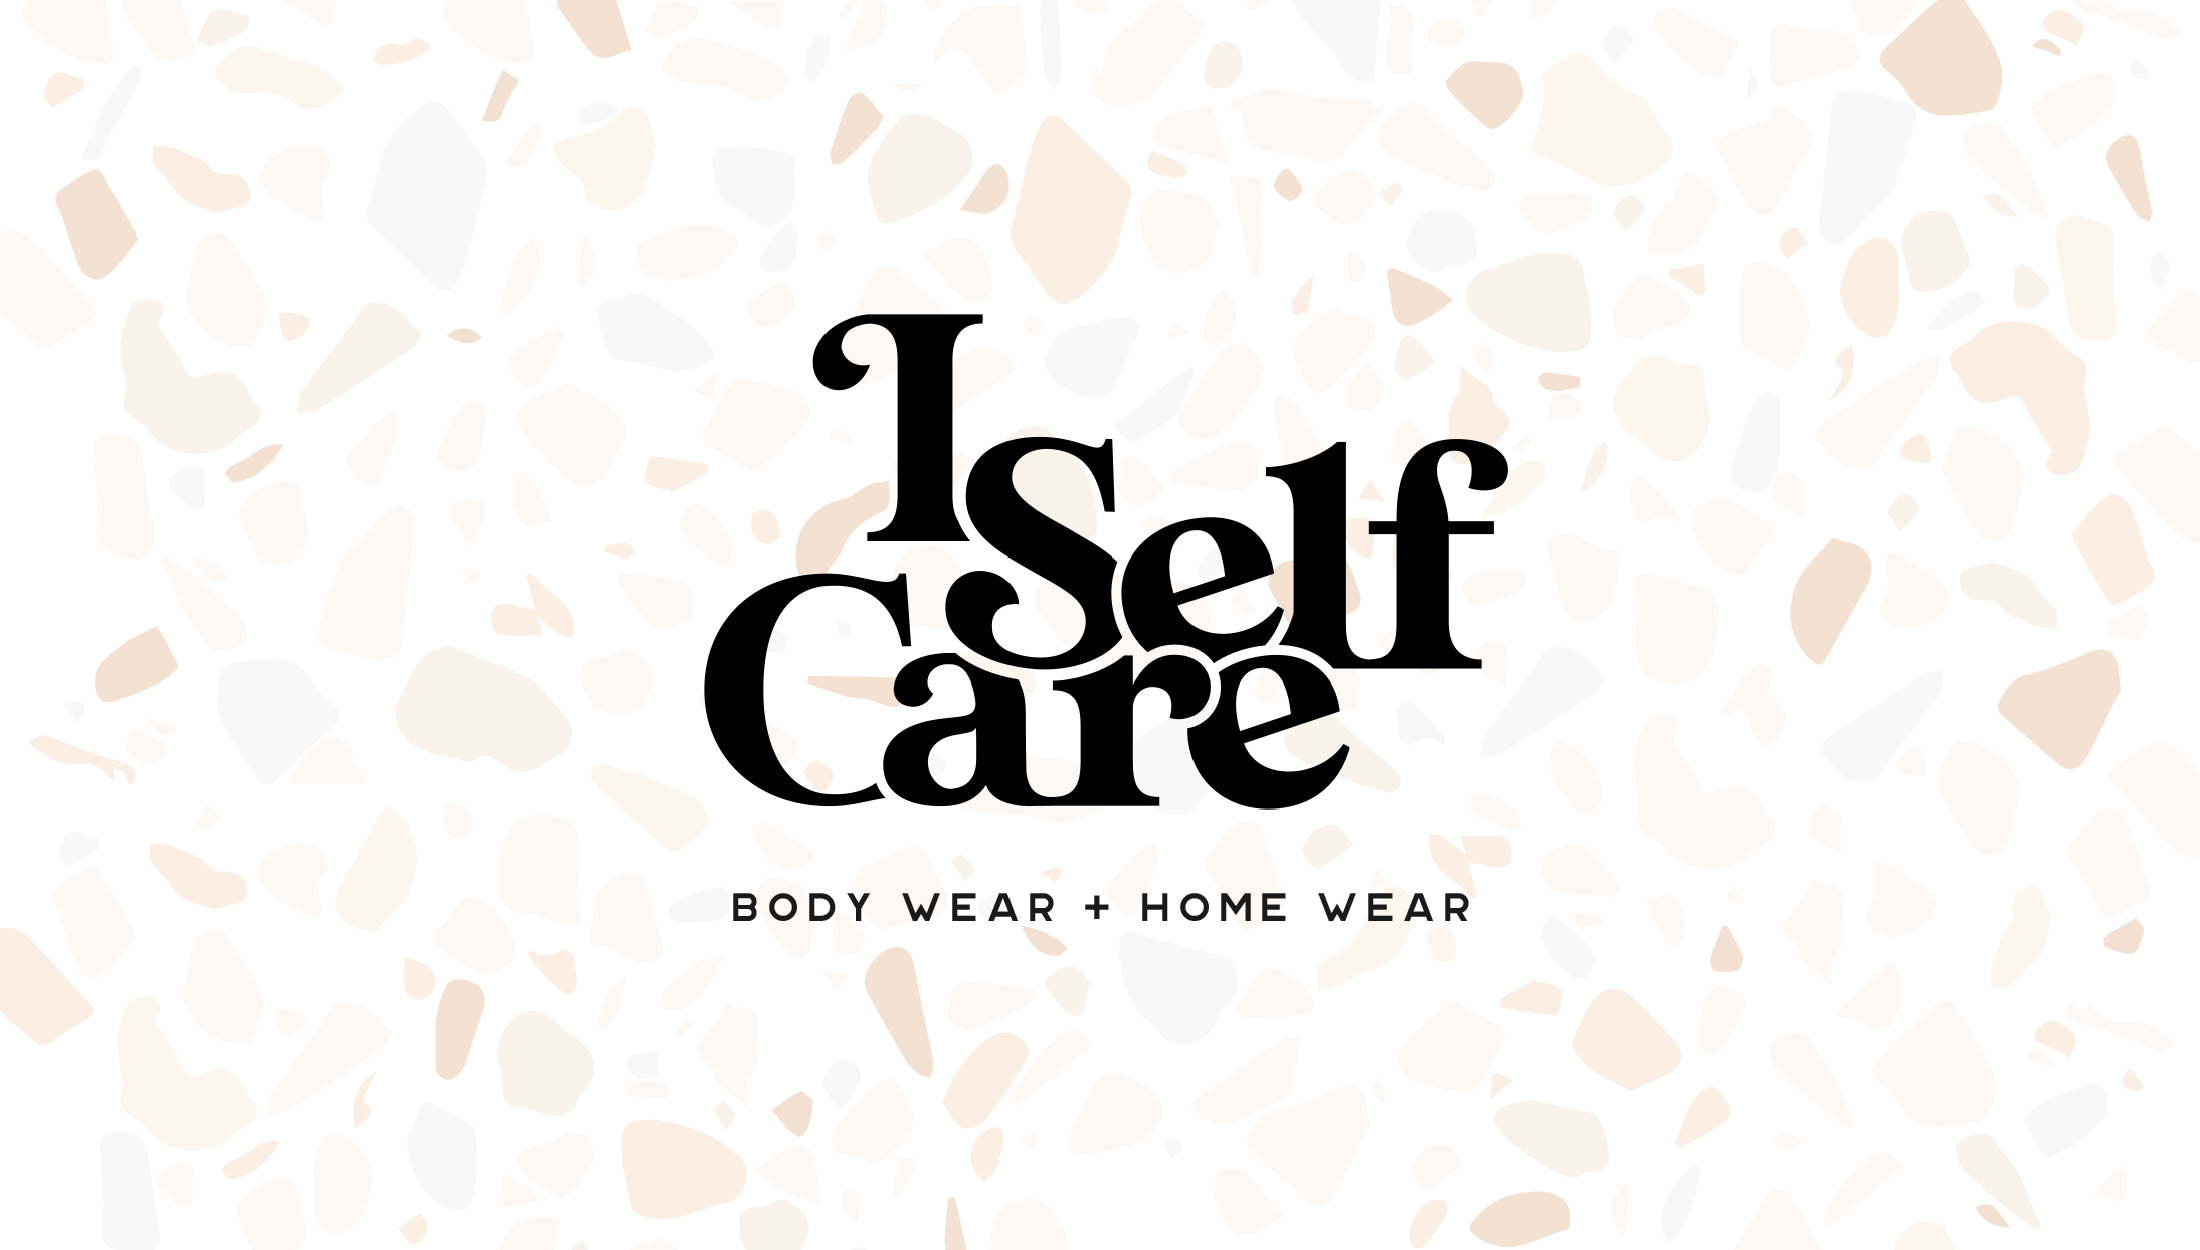 Final logo design for I Self Care, a body care and home wear line focused on selling candles and soaps that are non-toxic and derived from plants - designed by Wiltshire-based graphic designer, Kaye Huett